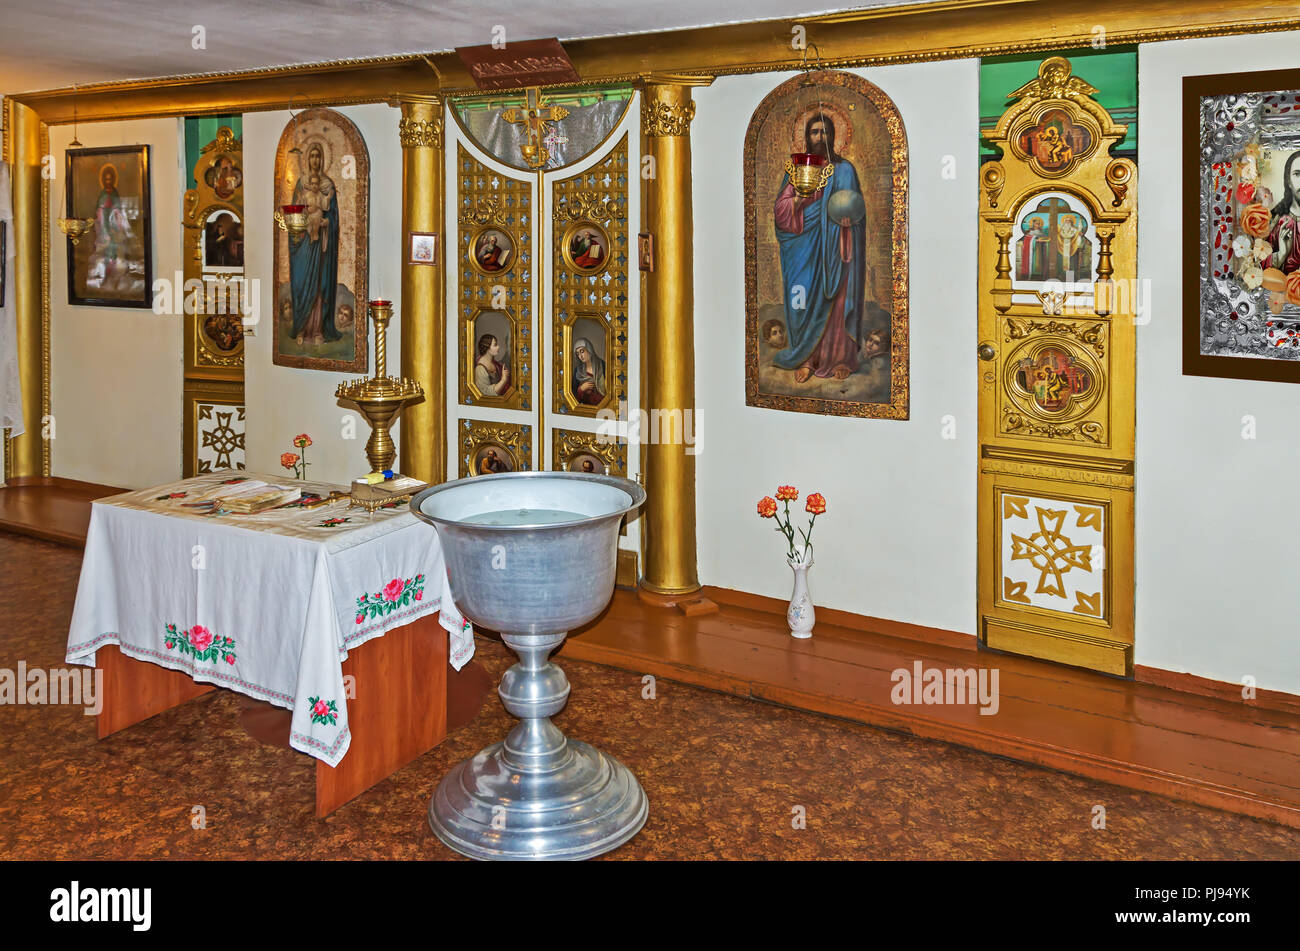 A baptismal font, a throne and altar in the room for the performance rite of baptism in the Orthodox Church - Stock Image